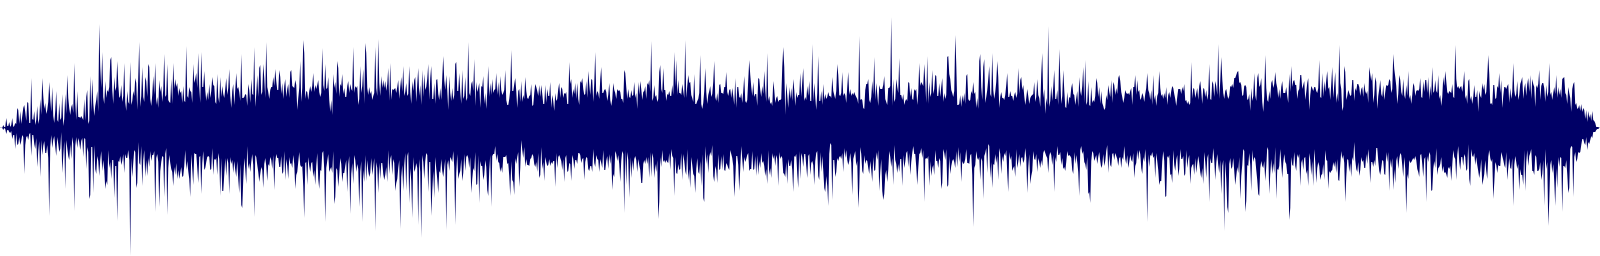 waveform of track #143525